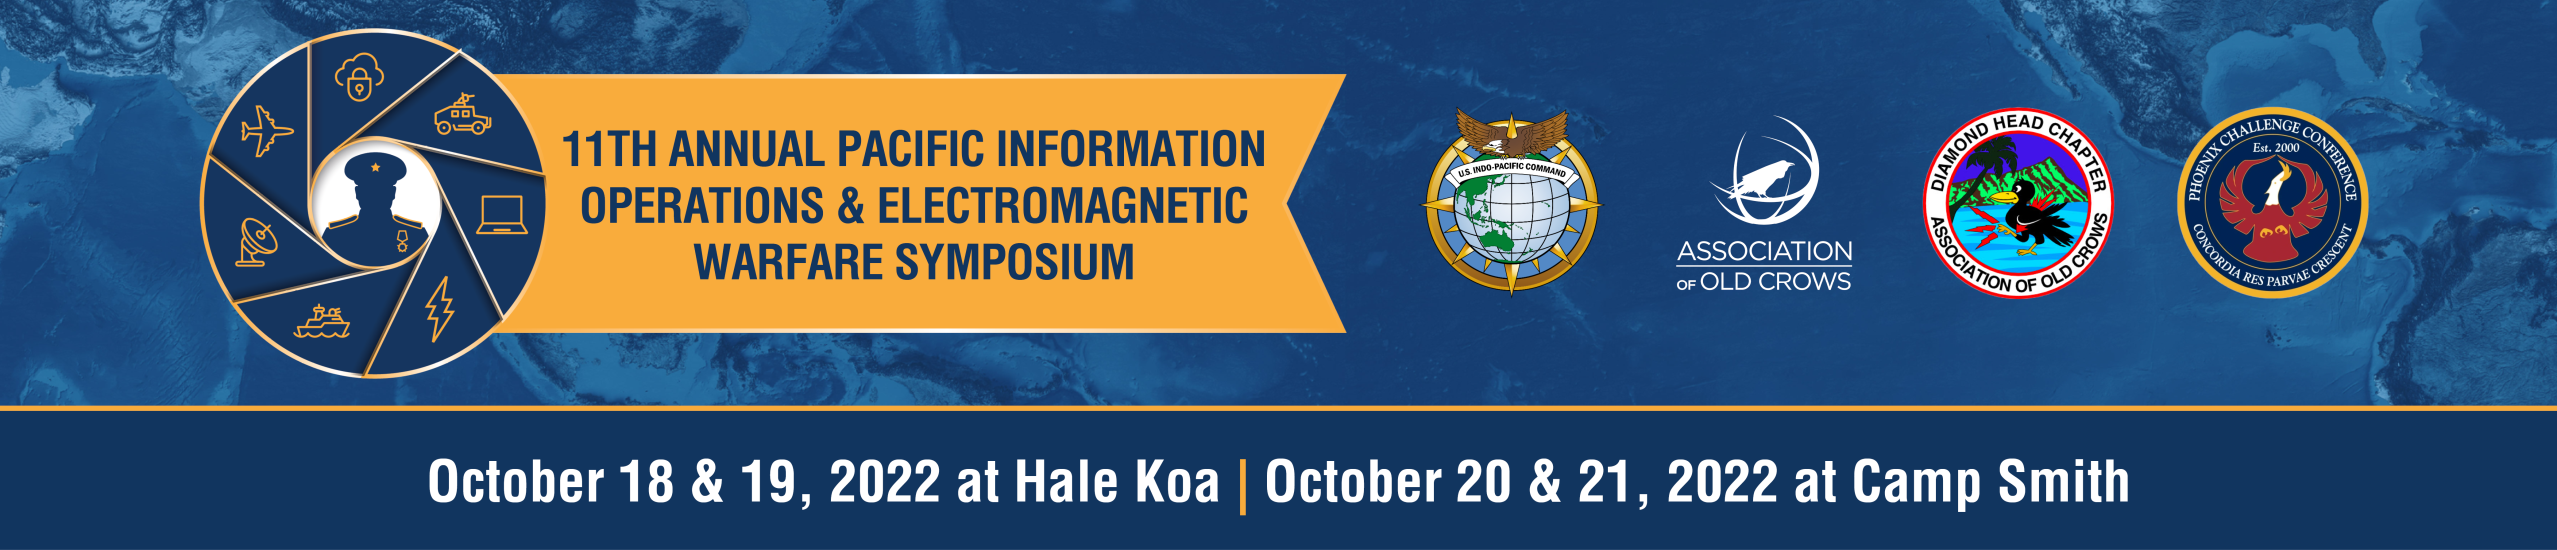 10th Annual Pacific Information Operations & Electronic Warfare Symposium